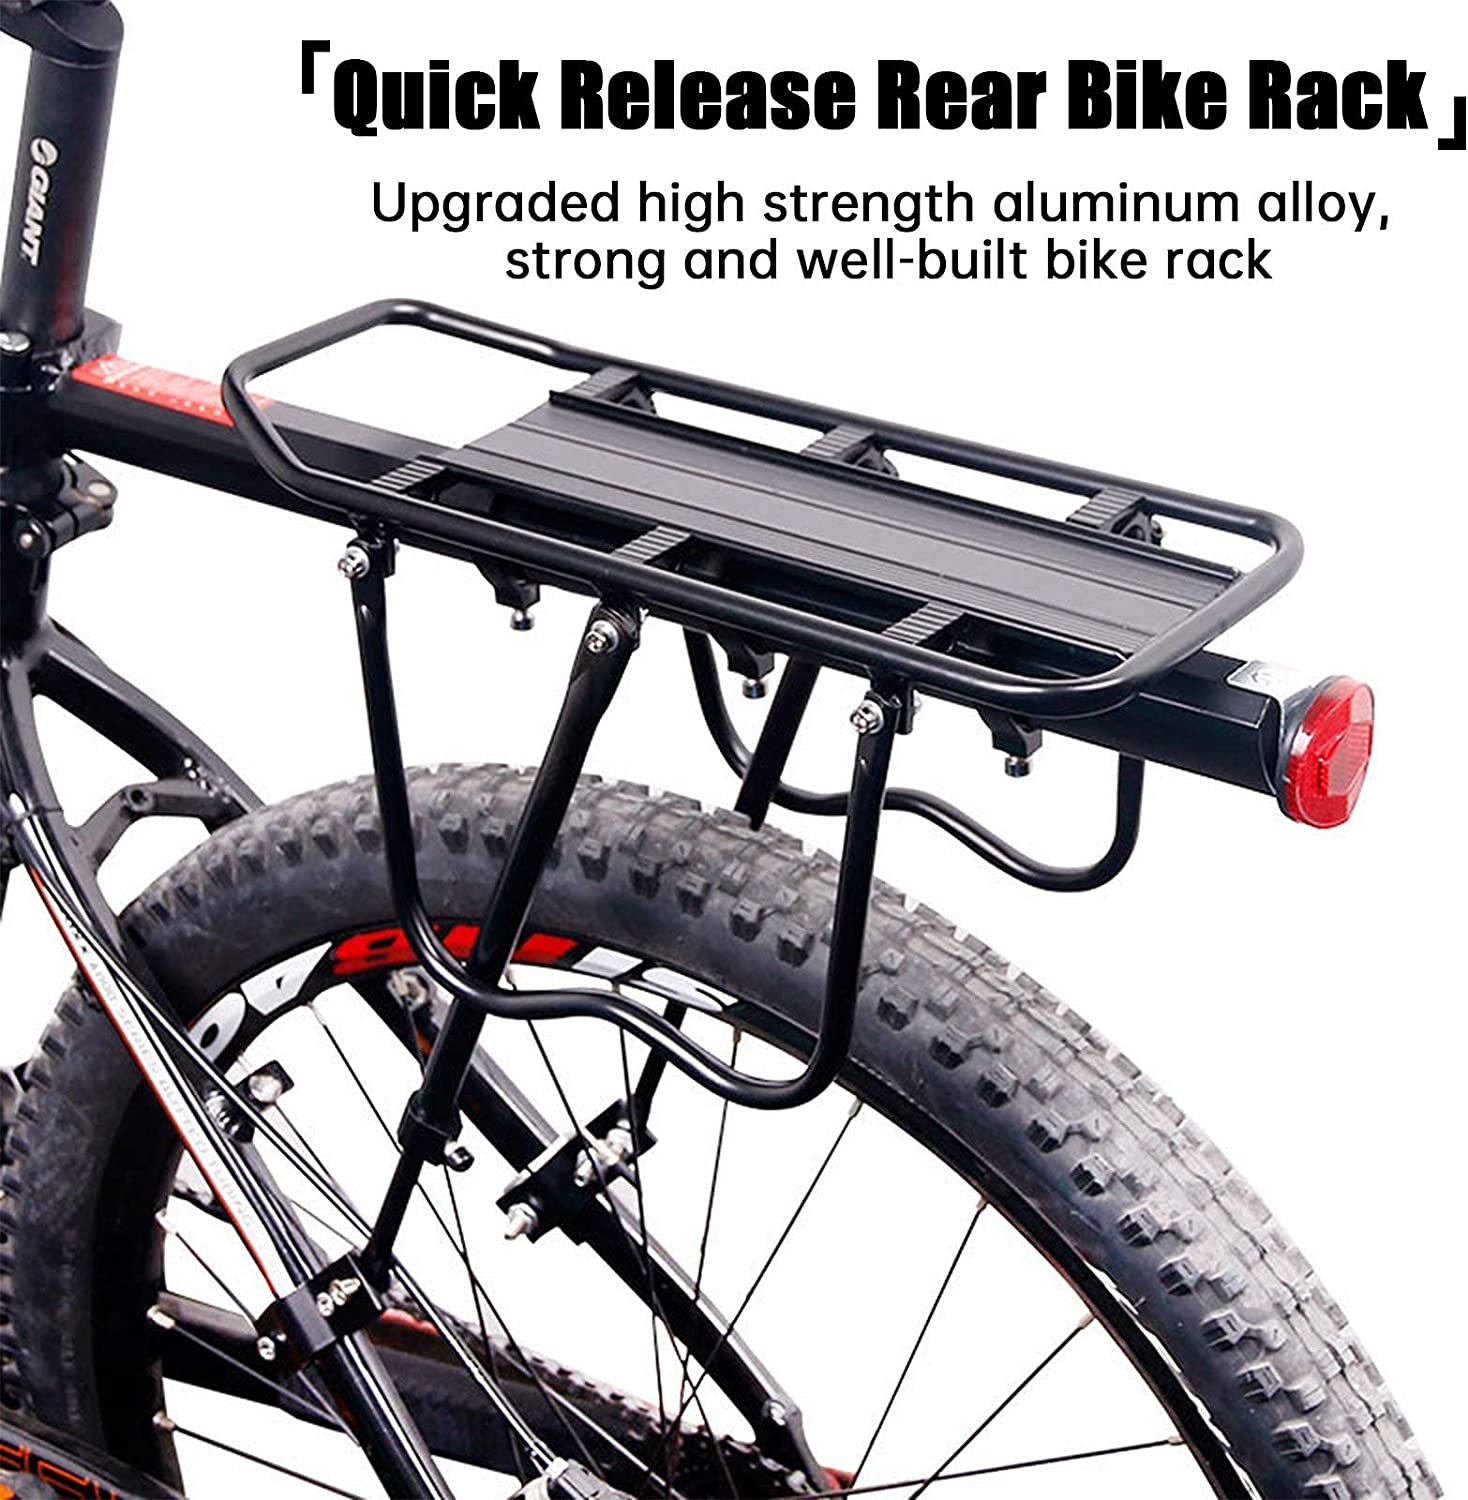 TFJ Rear Bike Rack Quick Release Bicycle Cargo Rack Universal Adjustable Alloy Bicycle Luggage Carrier 110 lbs Capacity Easy to Install